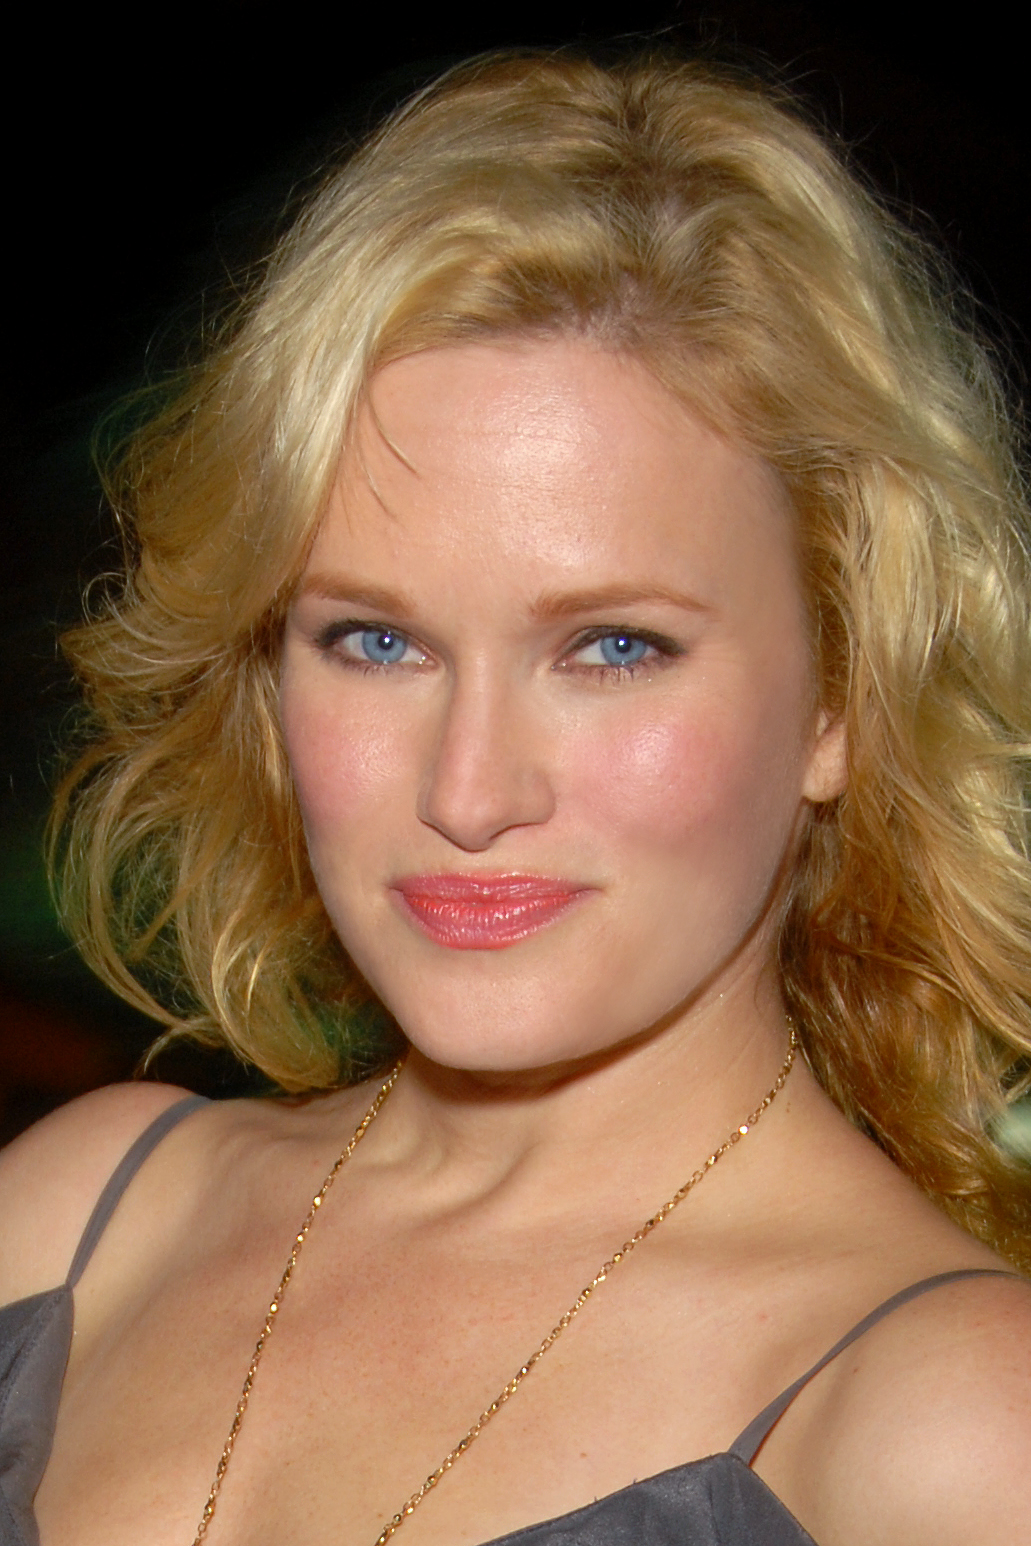 Nicholle Tom - Wikipedia, the free encyclopedia